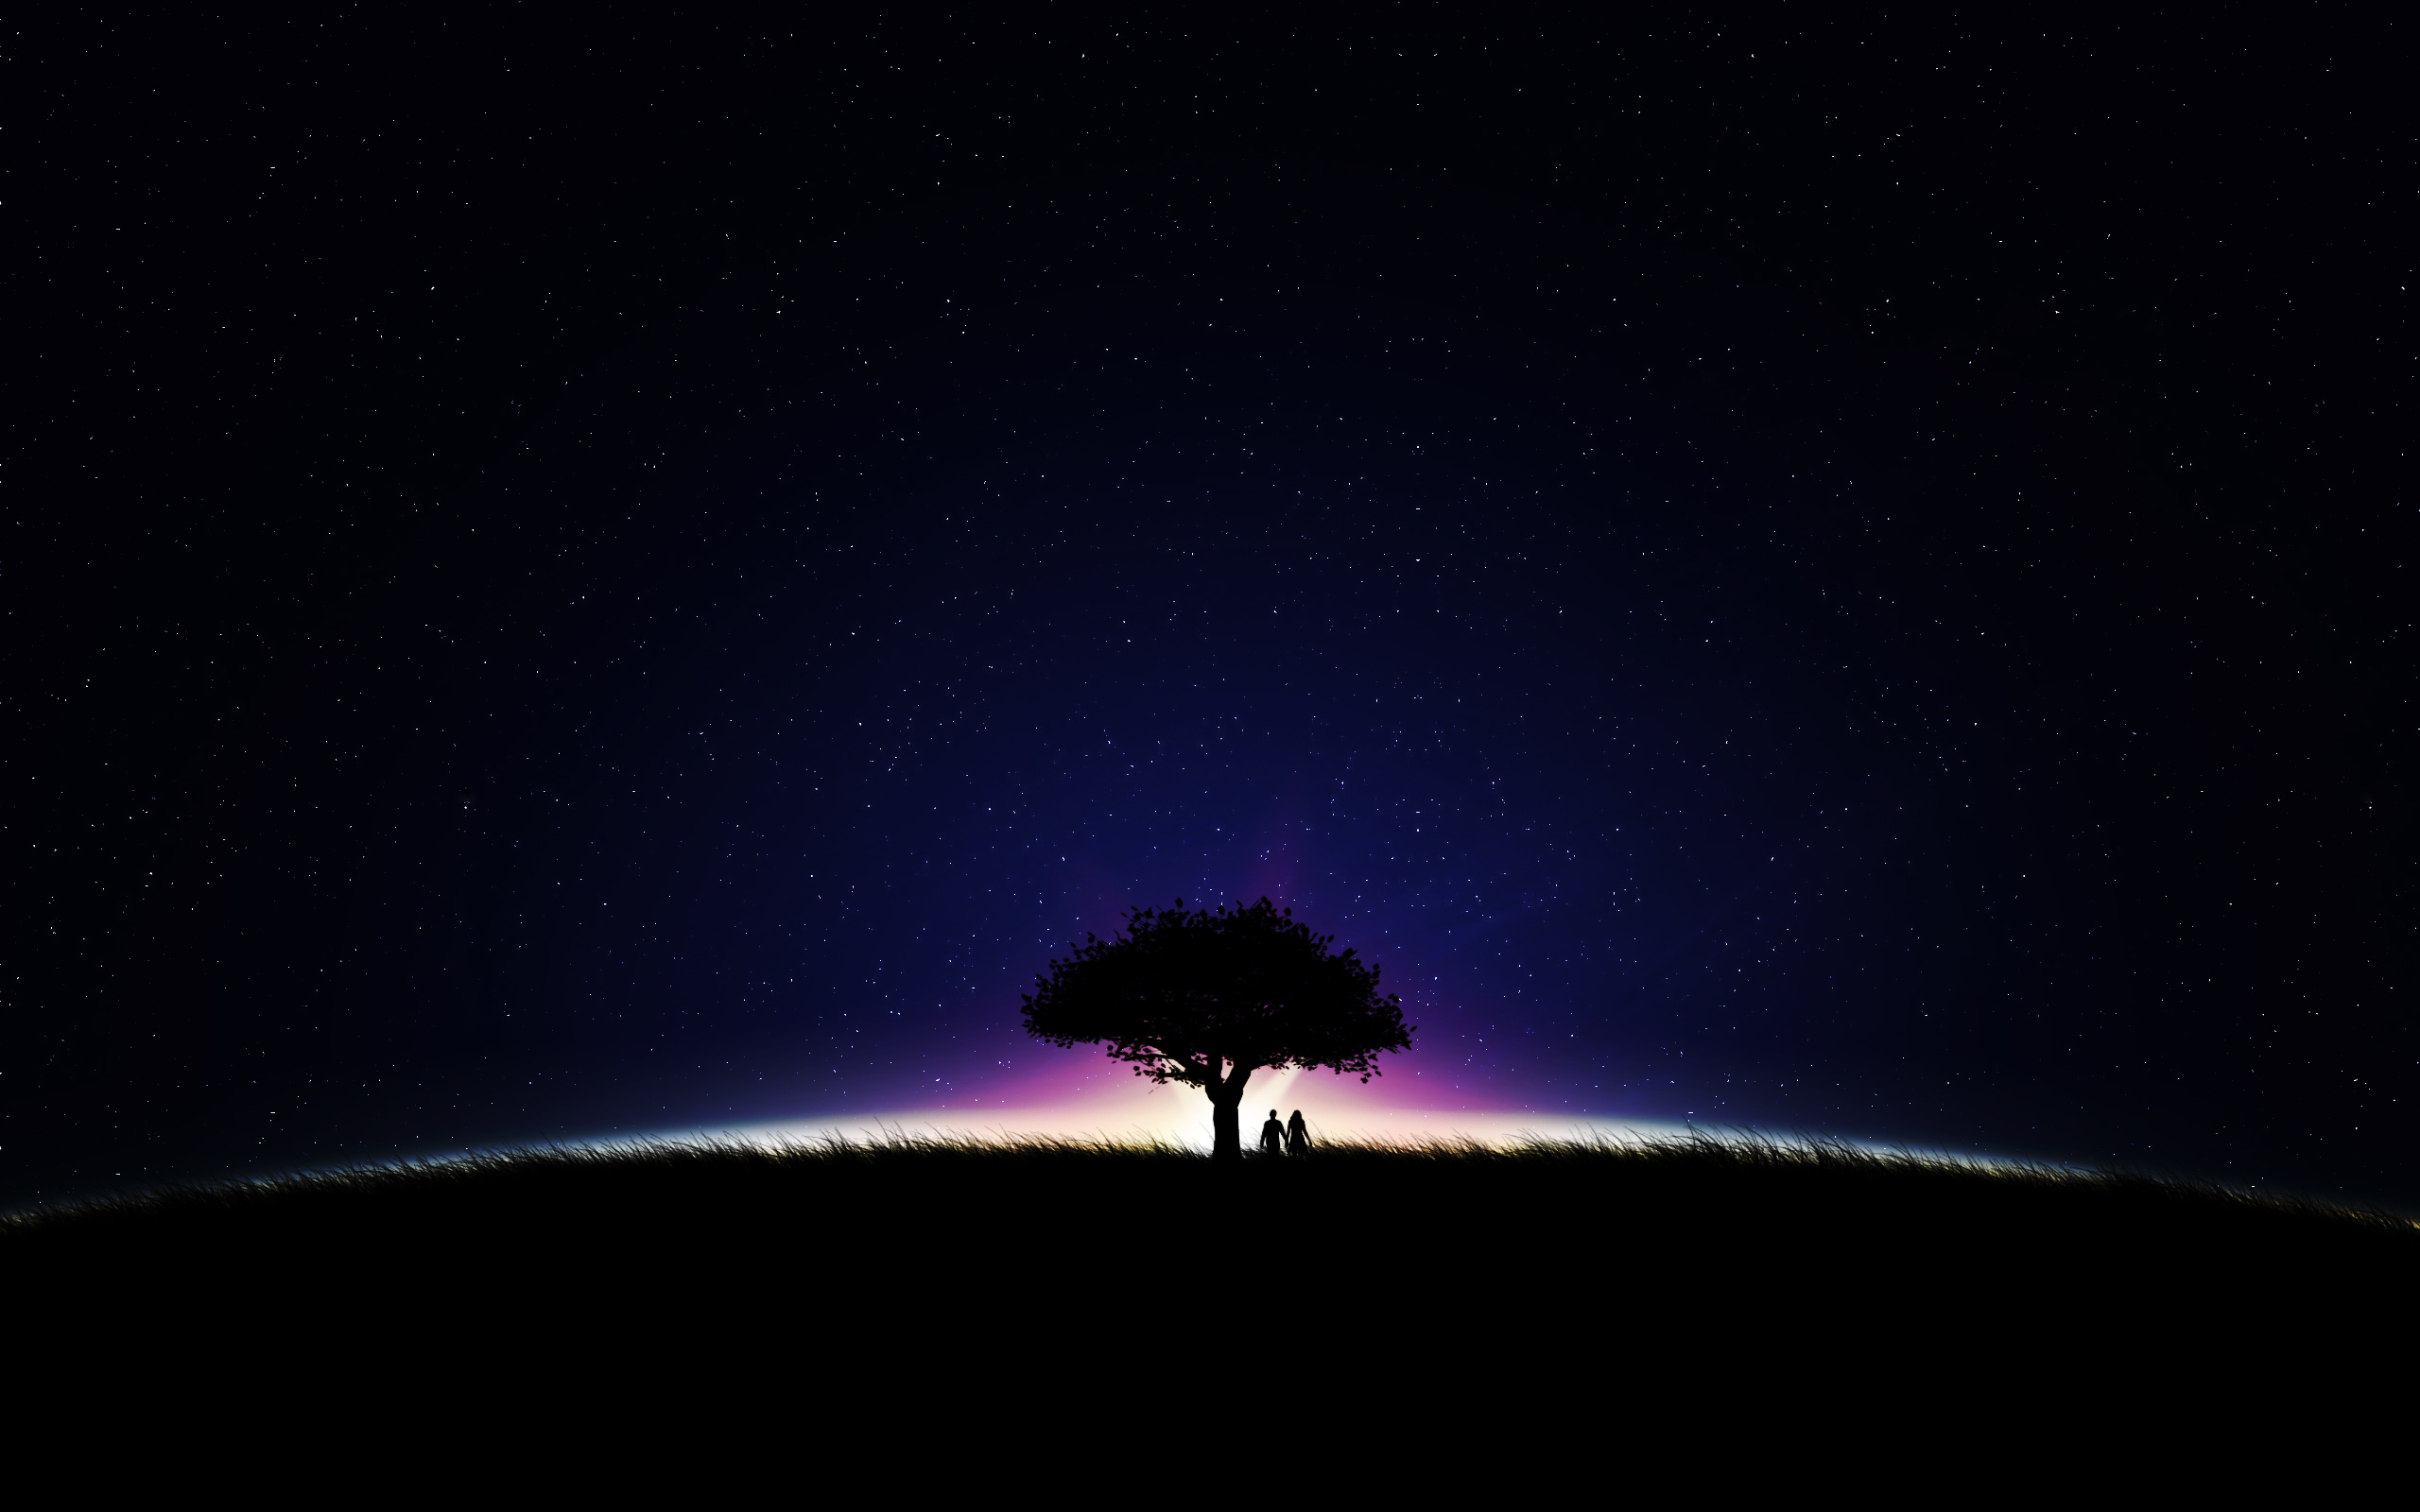 Stars in the night sky wallpapers and images   wallpapers pictures 2560x1600